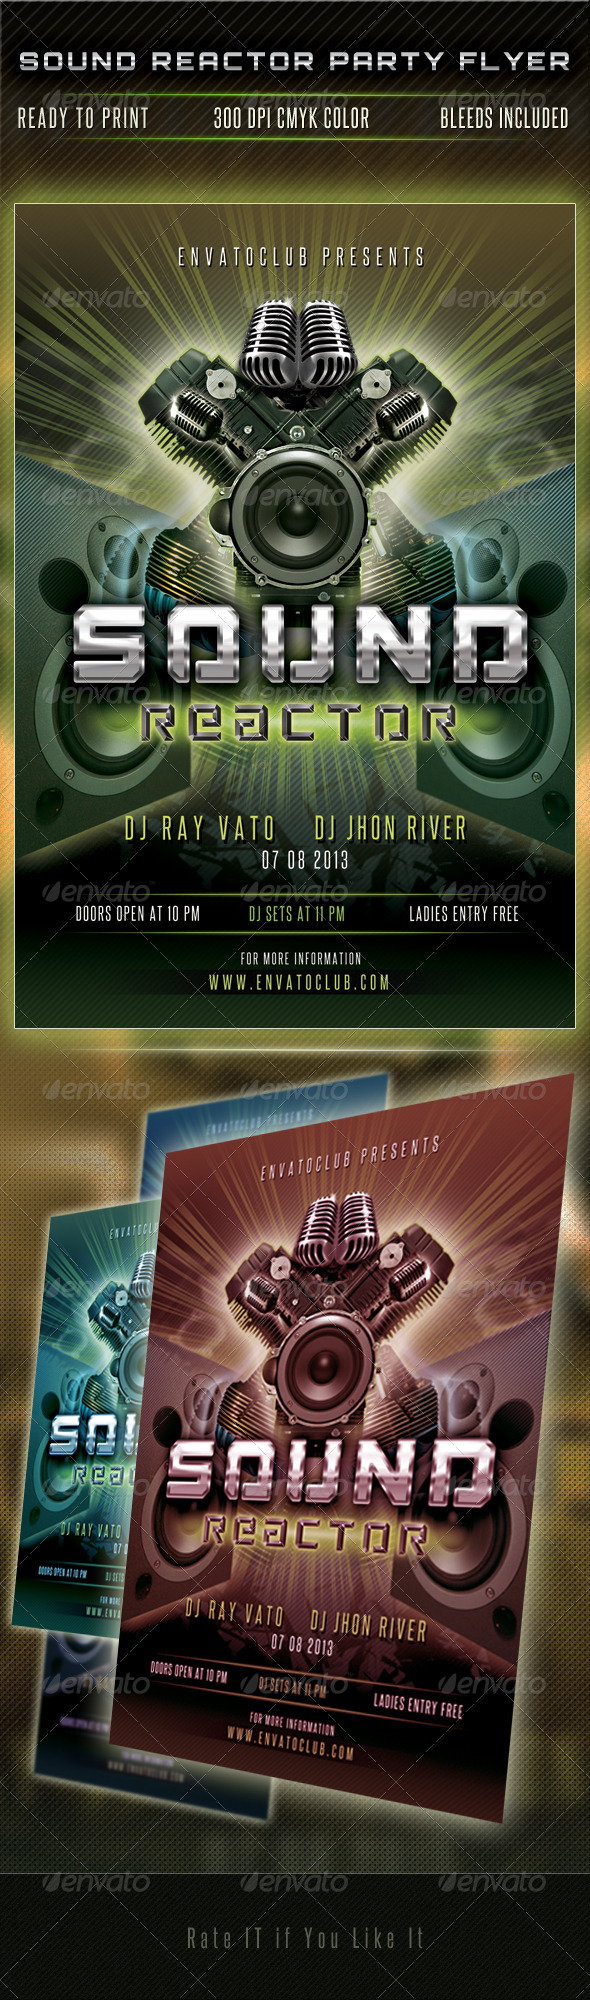 Sound Reactor Party Flyer